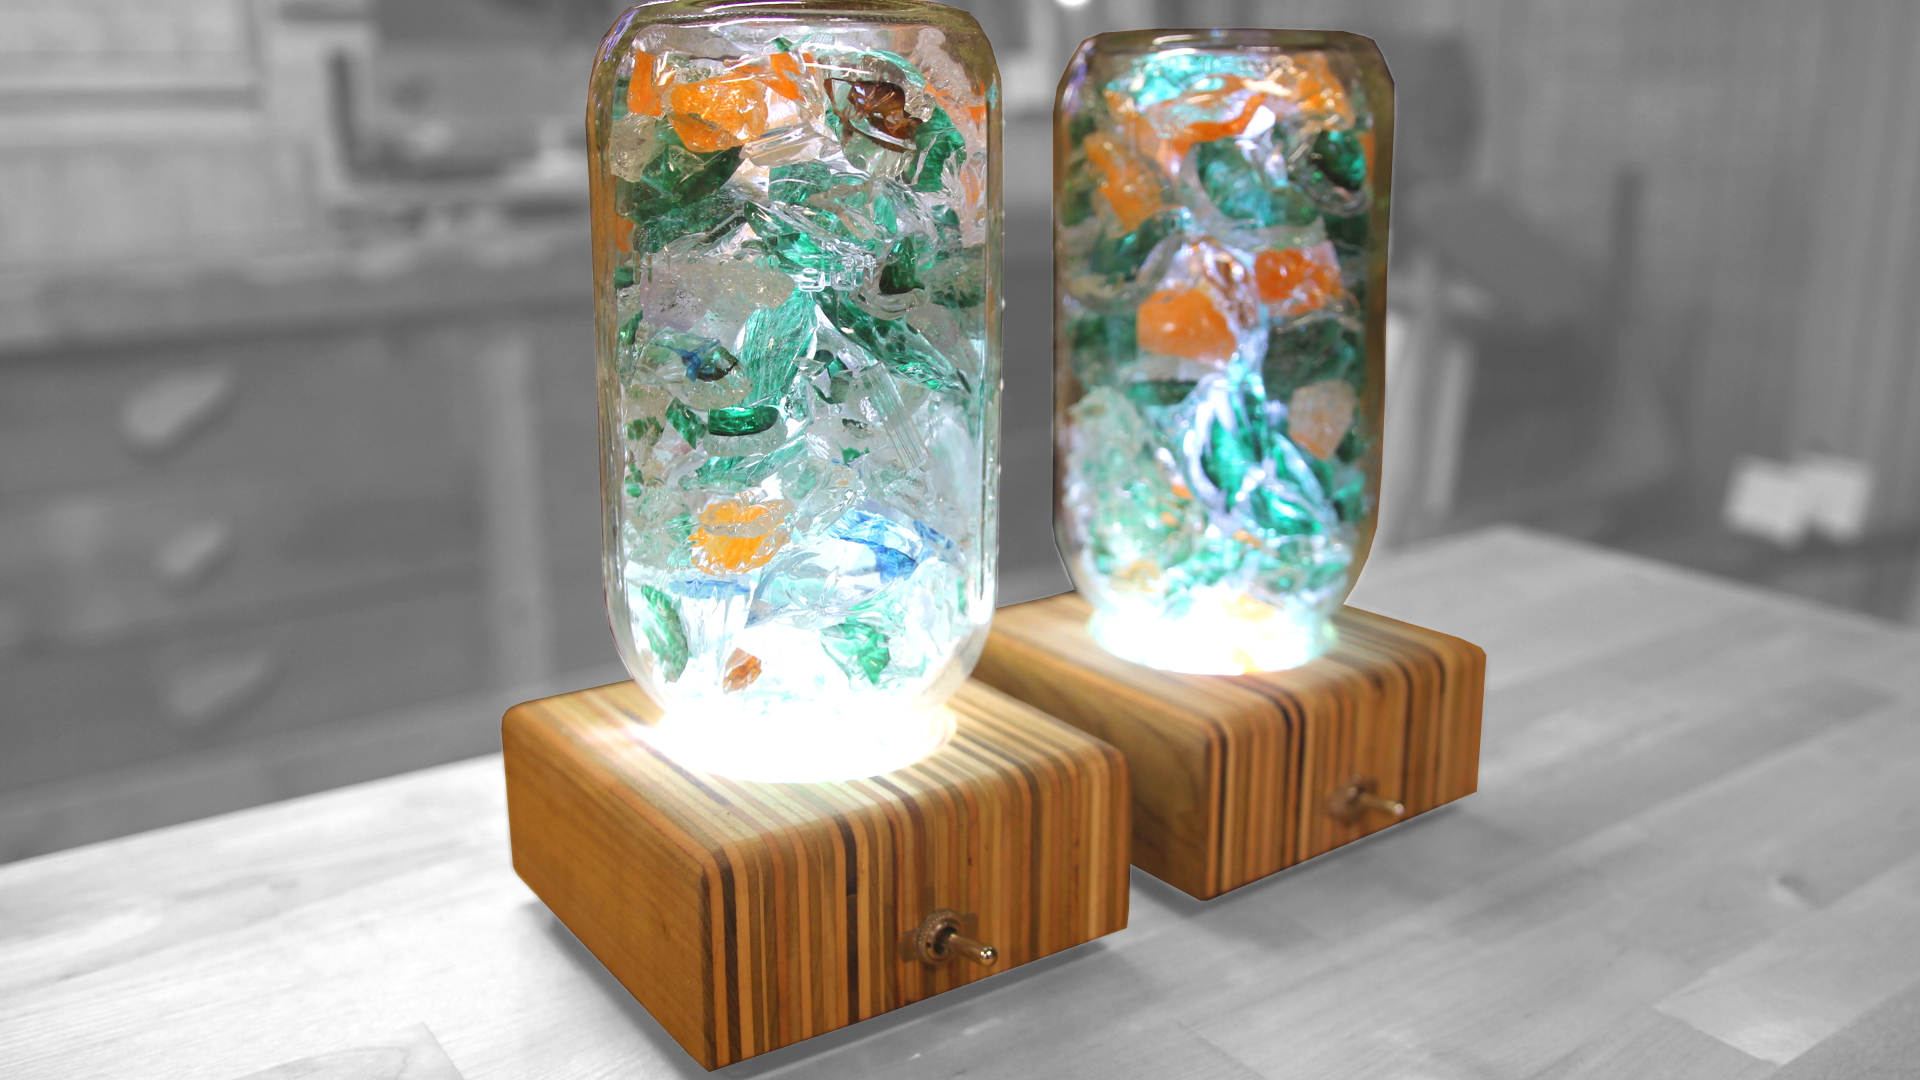 Picture of Upcycled Glass Lamps With Mason Jar